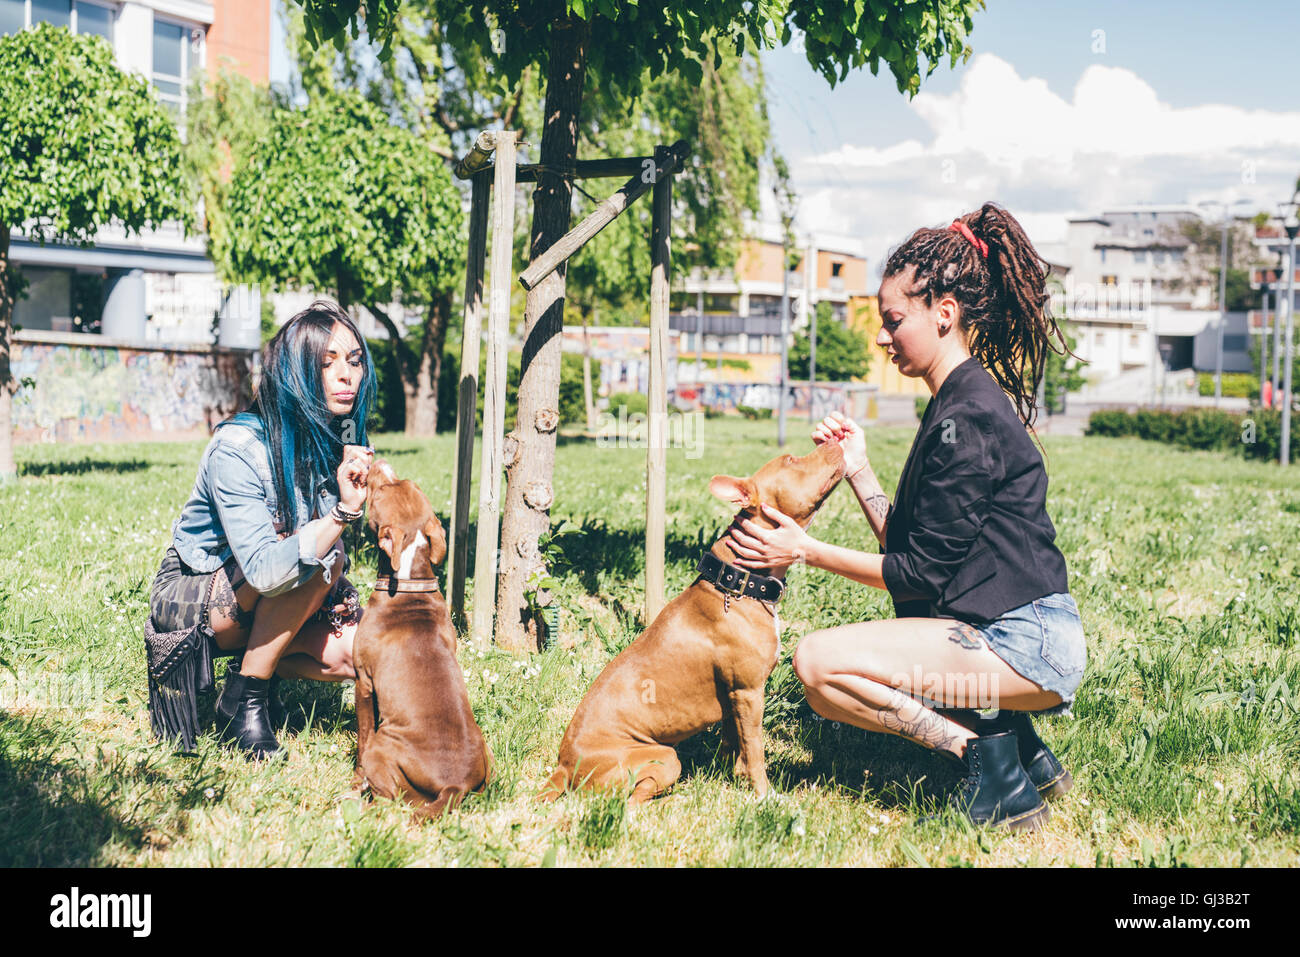 Two young women petting pit bull terriers in urban park - Stock Image